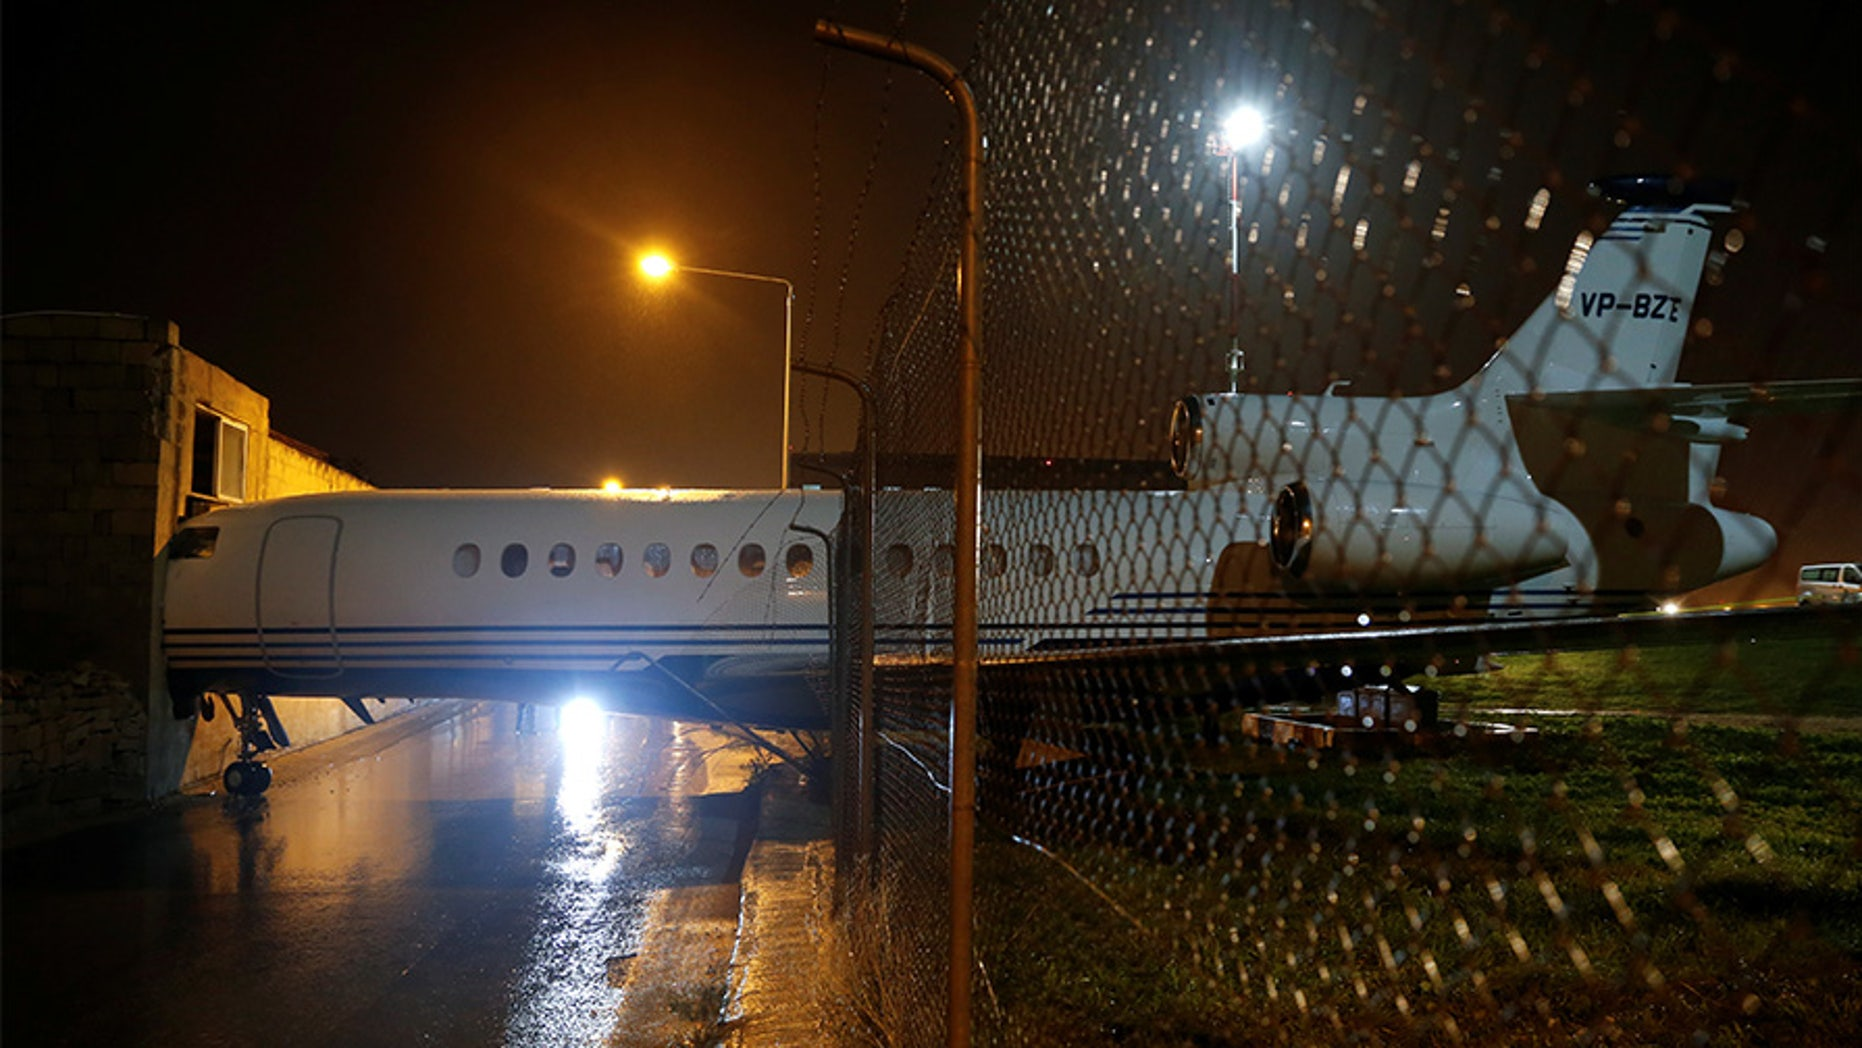 The privately-owned aircraft was blown into an adjacent office building on Wednesday night.